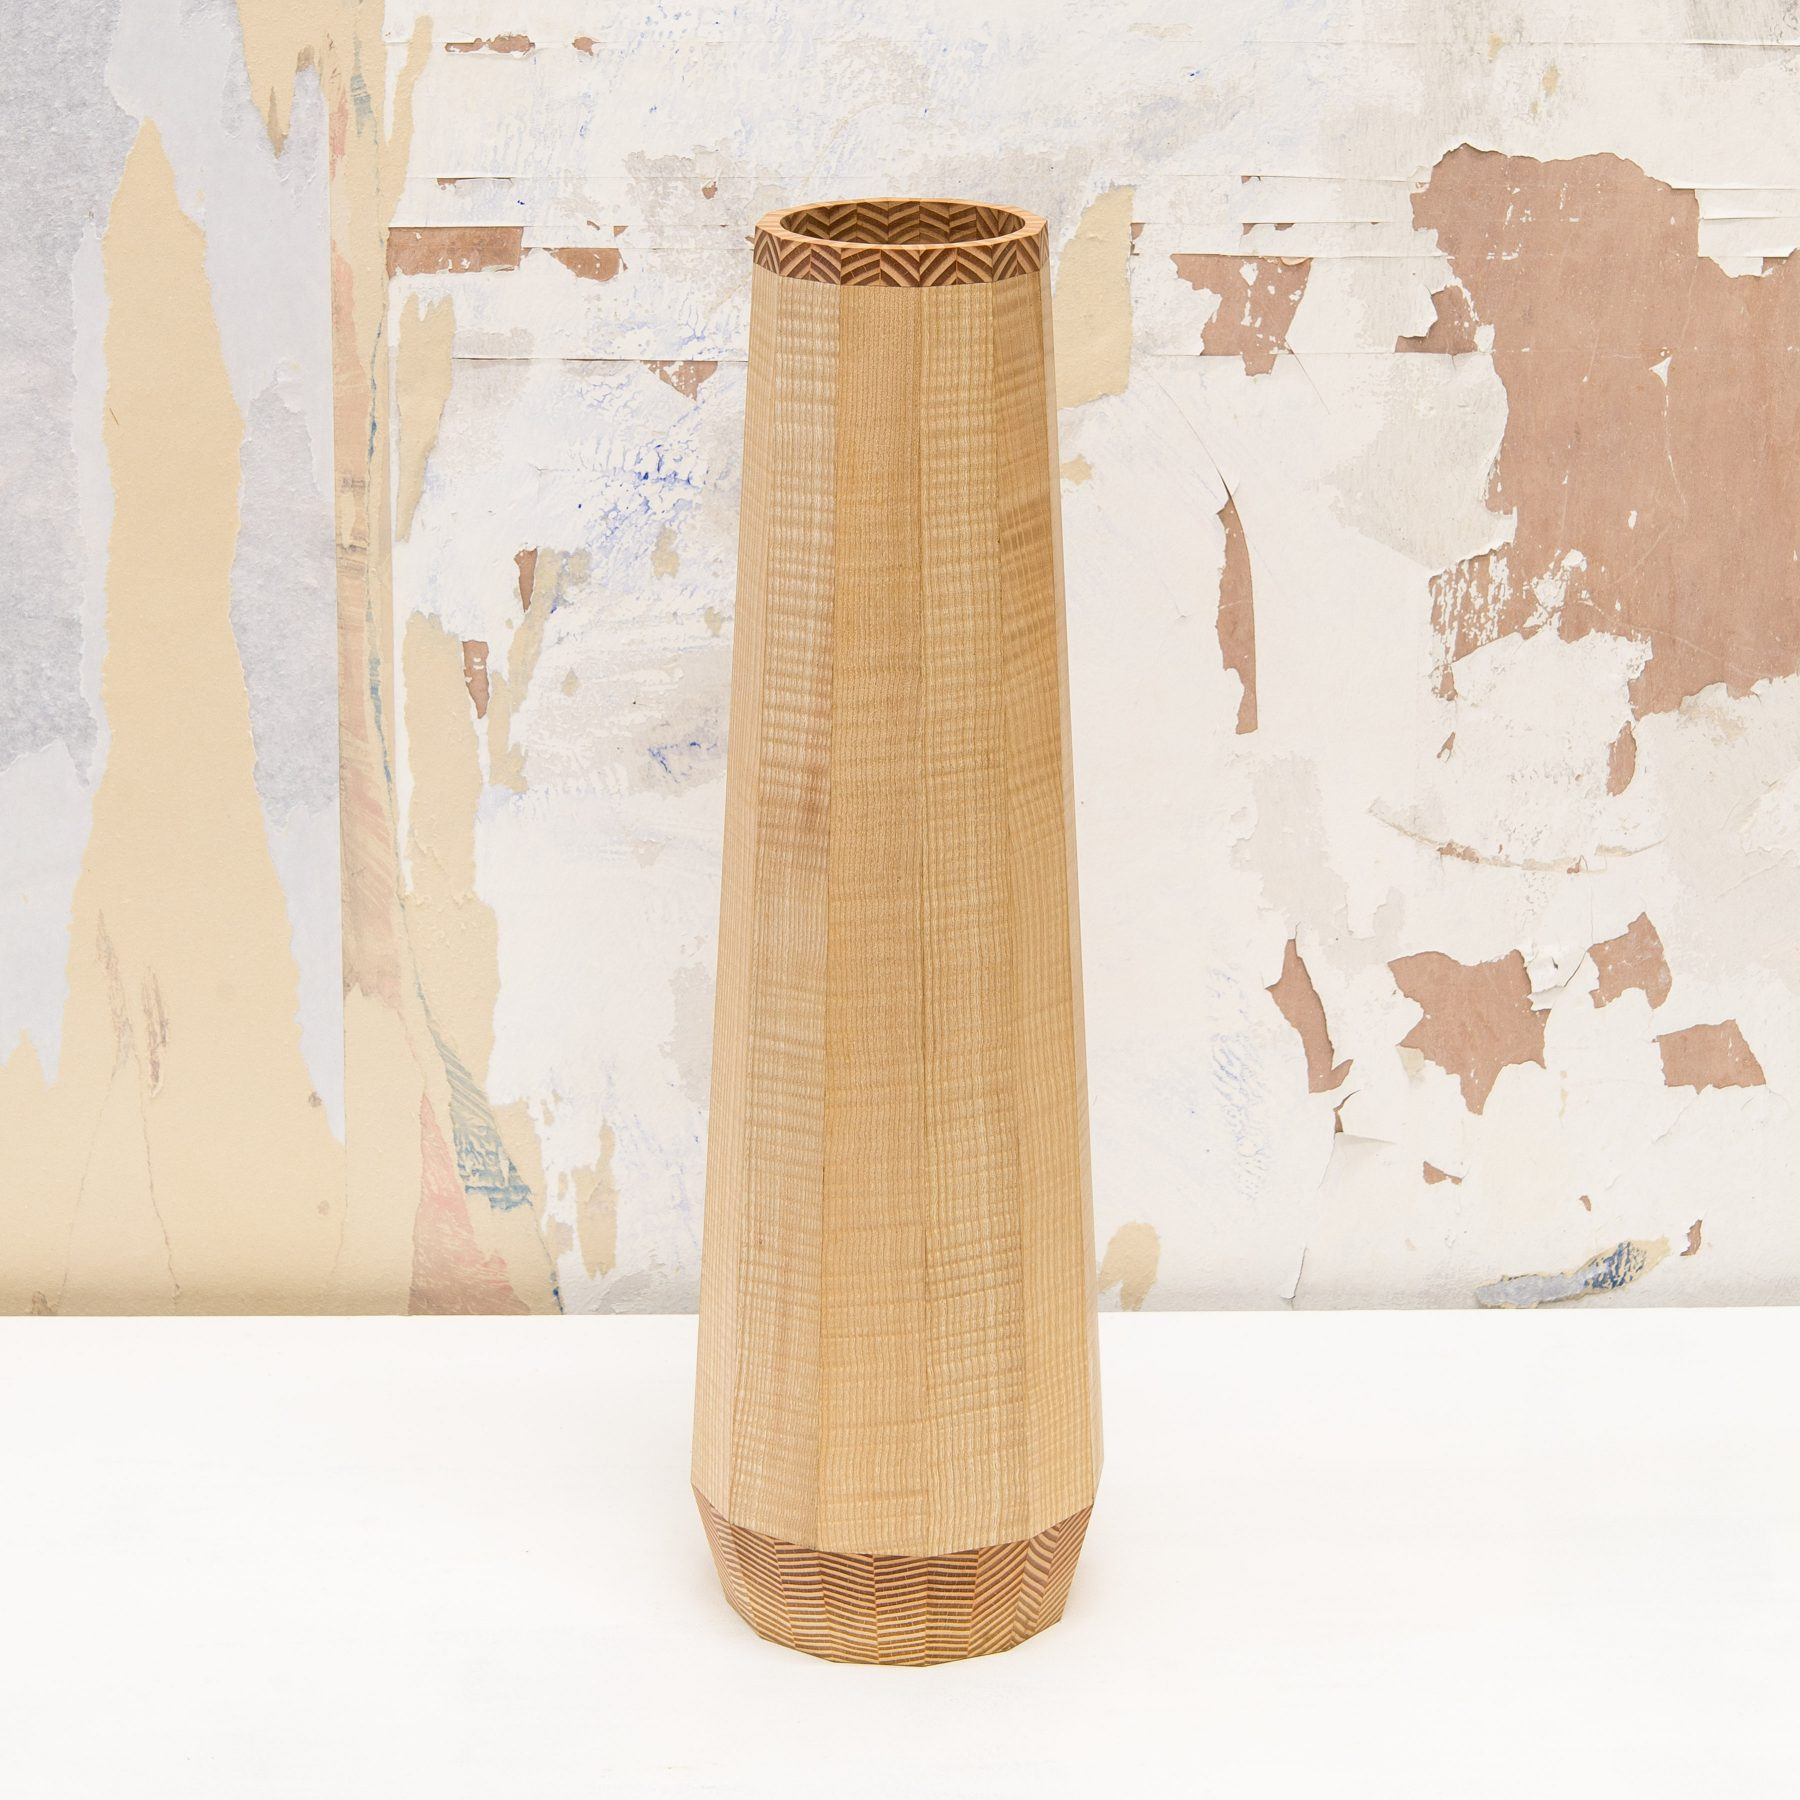 Jan Hendzel Studio rippled fir-1